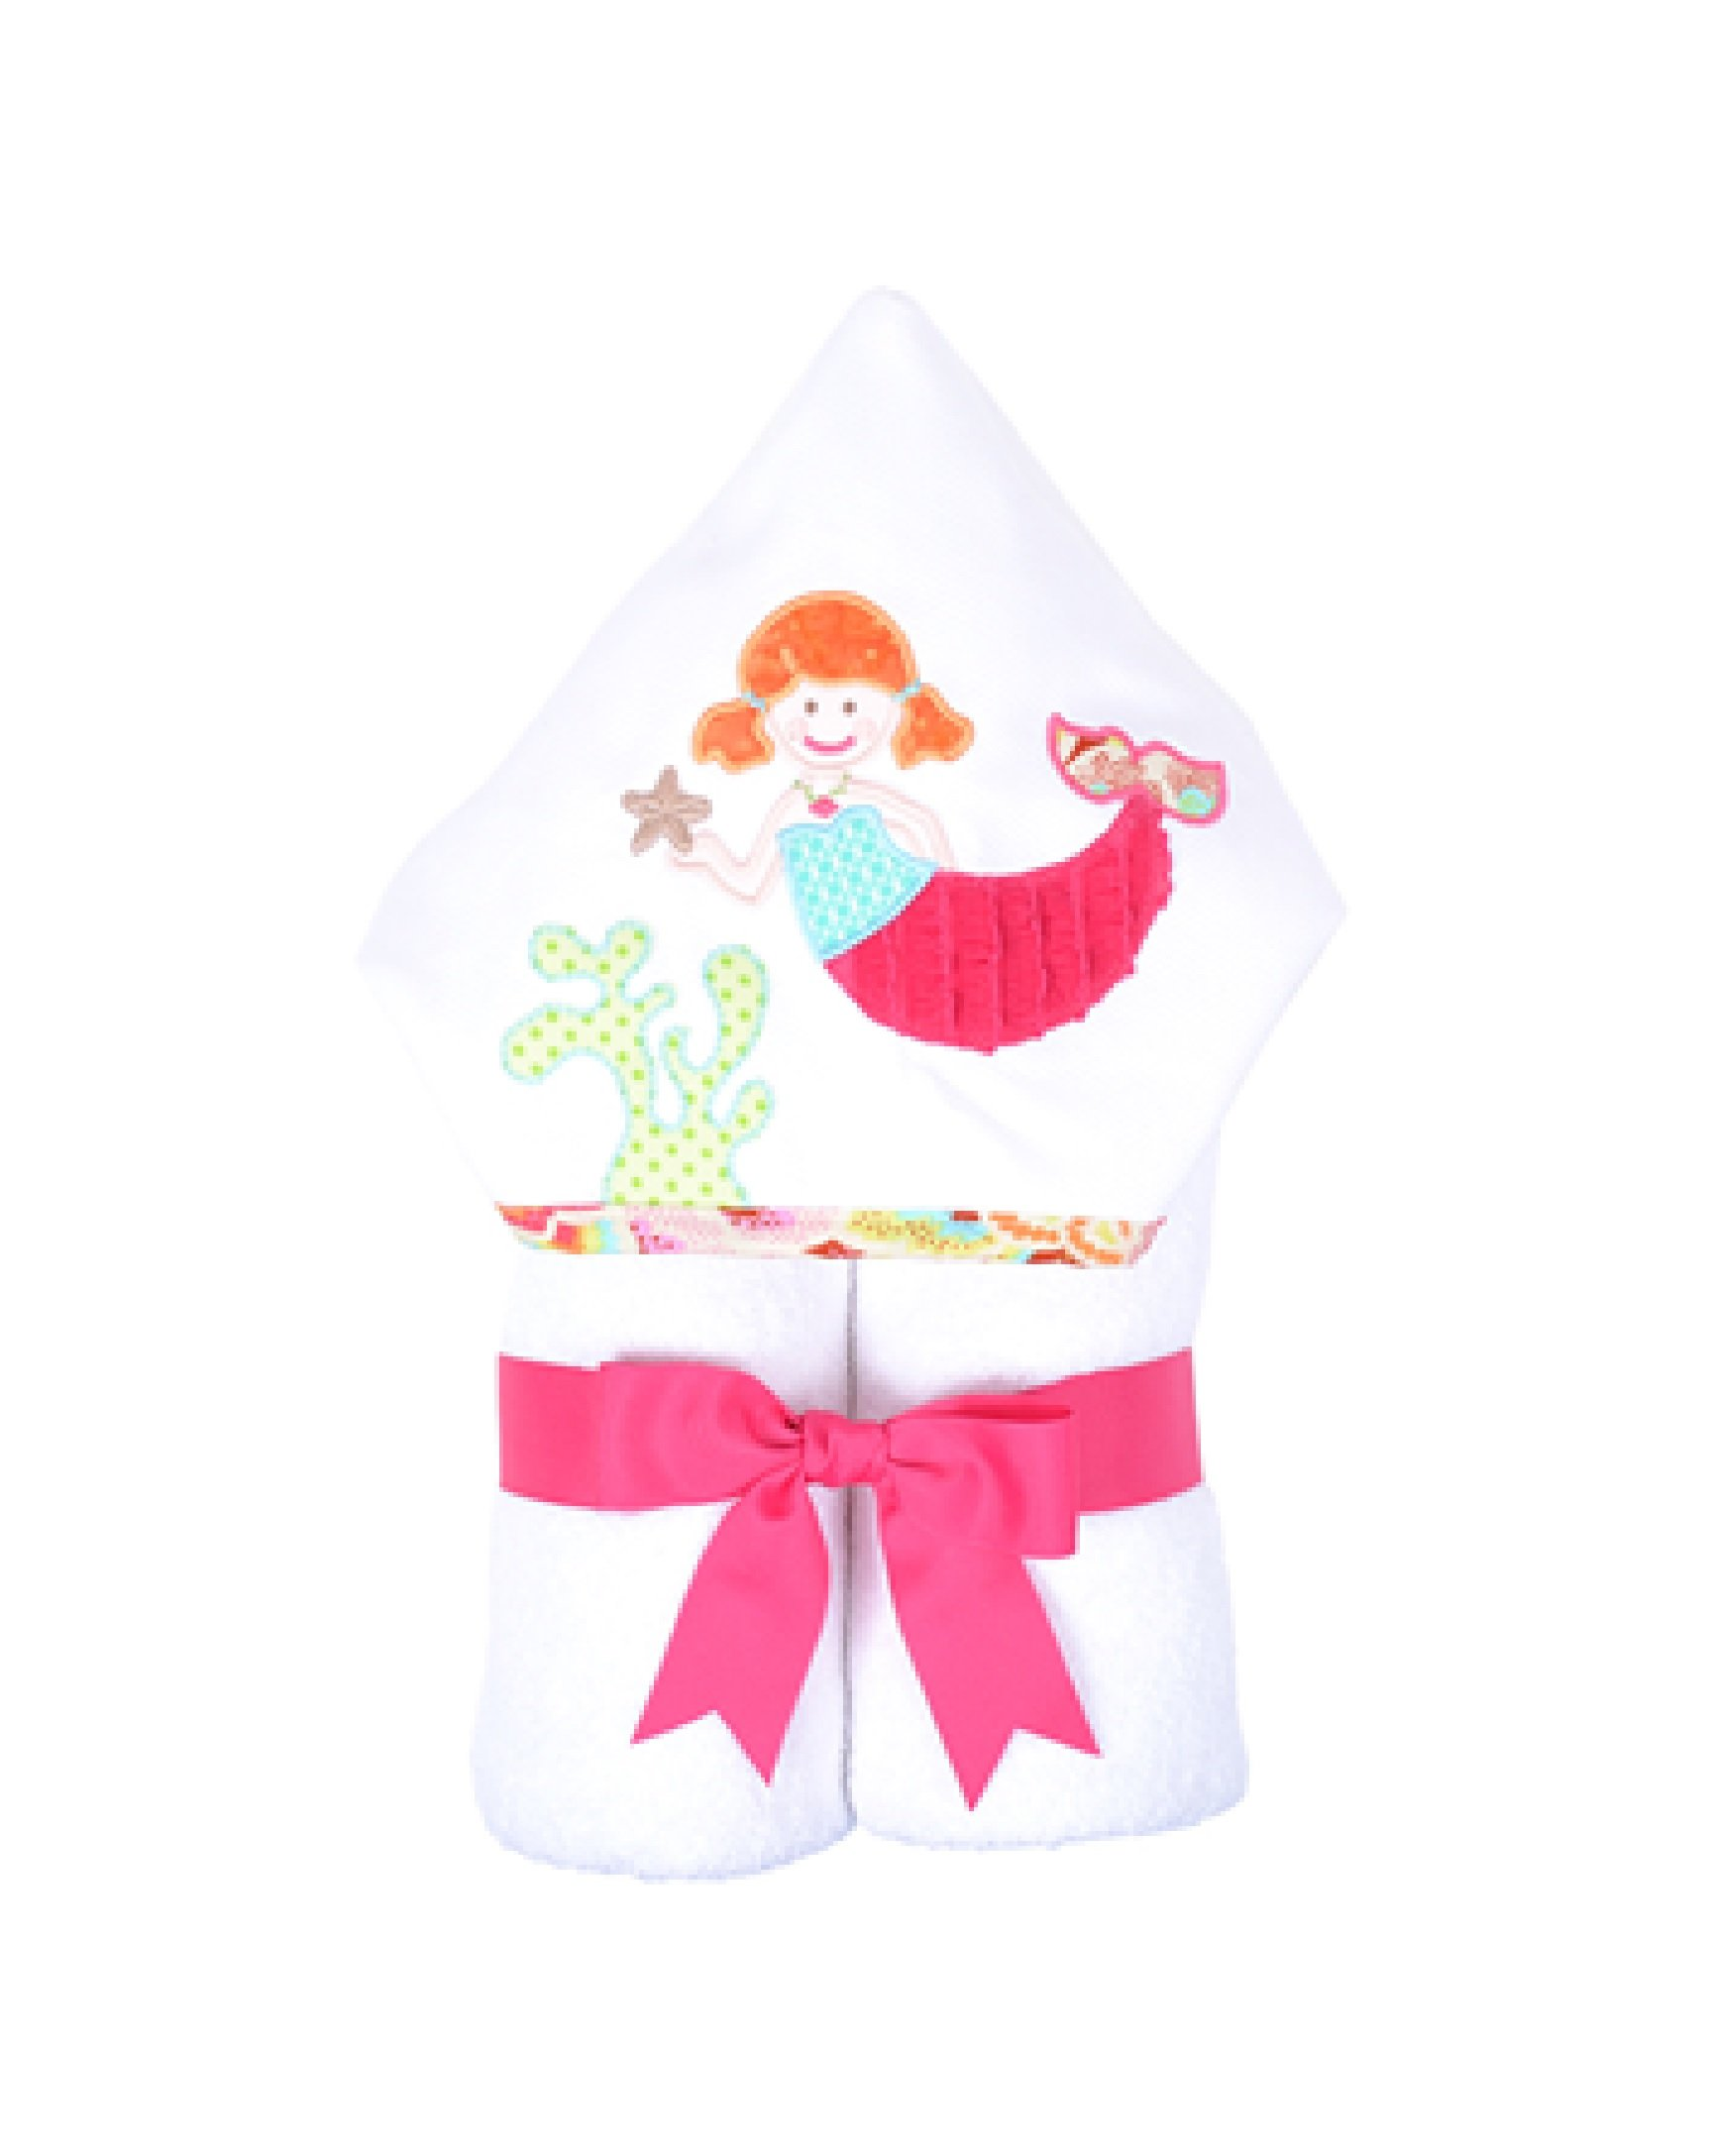 3 Marthas Boutique Everykid Hooded Towel (Pink - Merry Mermaids) by 3Marthas